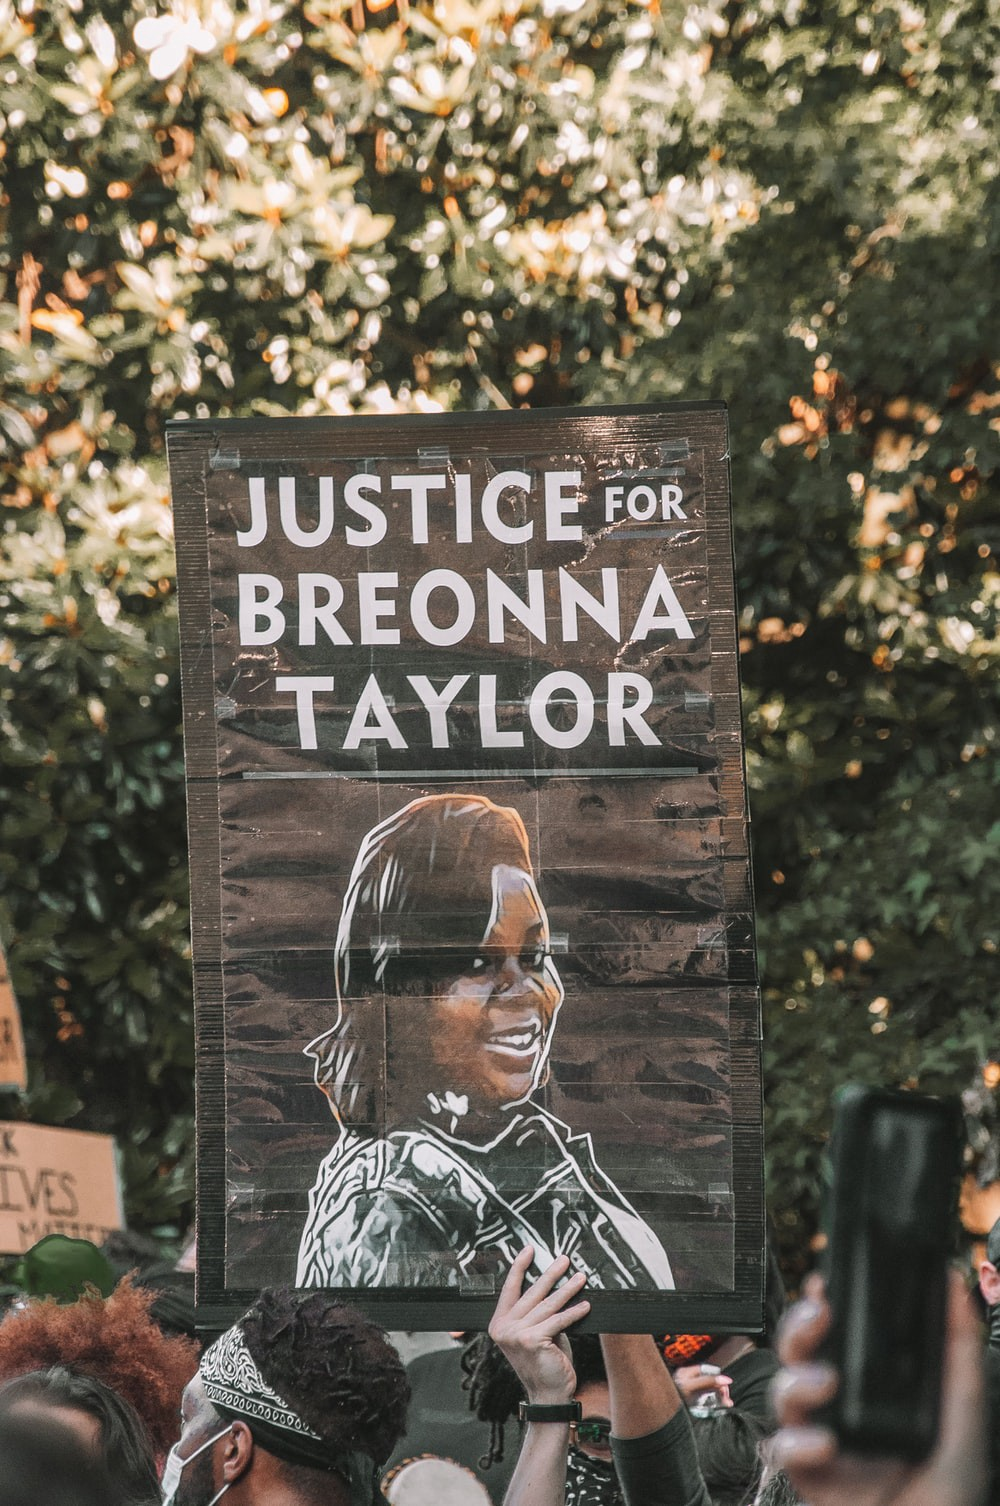 """[ID: a placard from a Black Lives Matter protest with Breonna Taylor's face, which reads """"JUSTICE FOR BREONNA TAYLOR.]"""